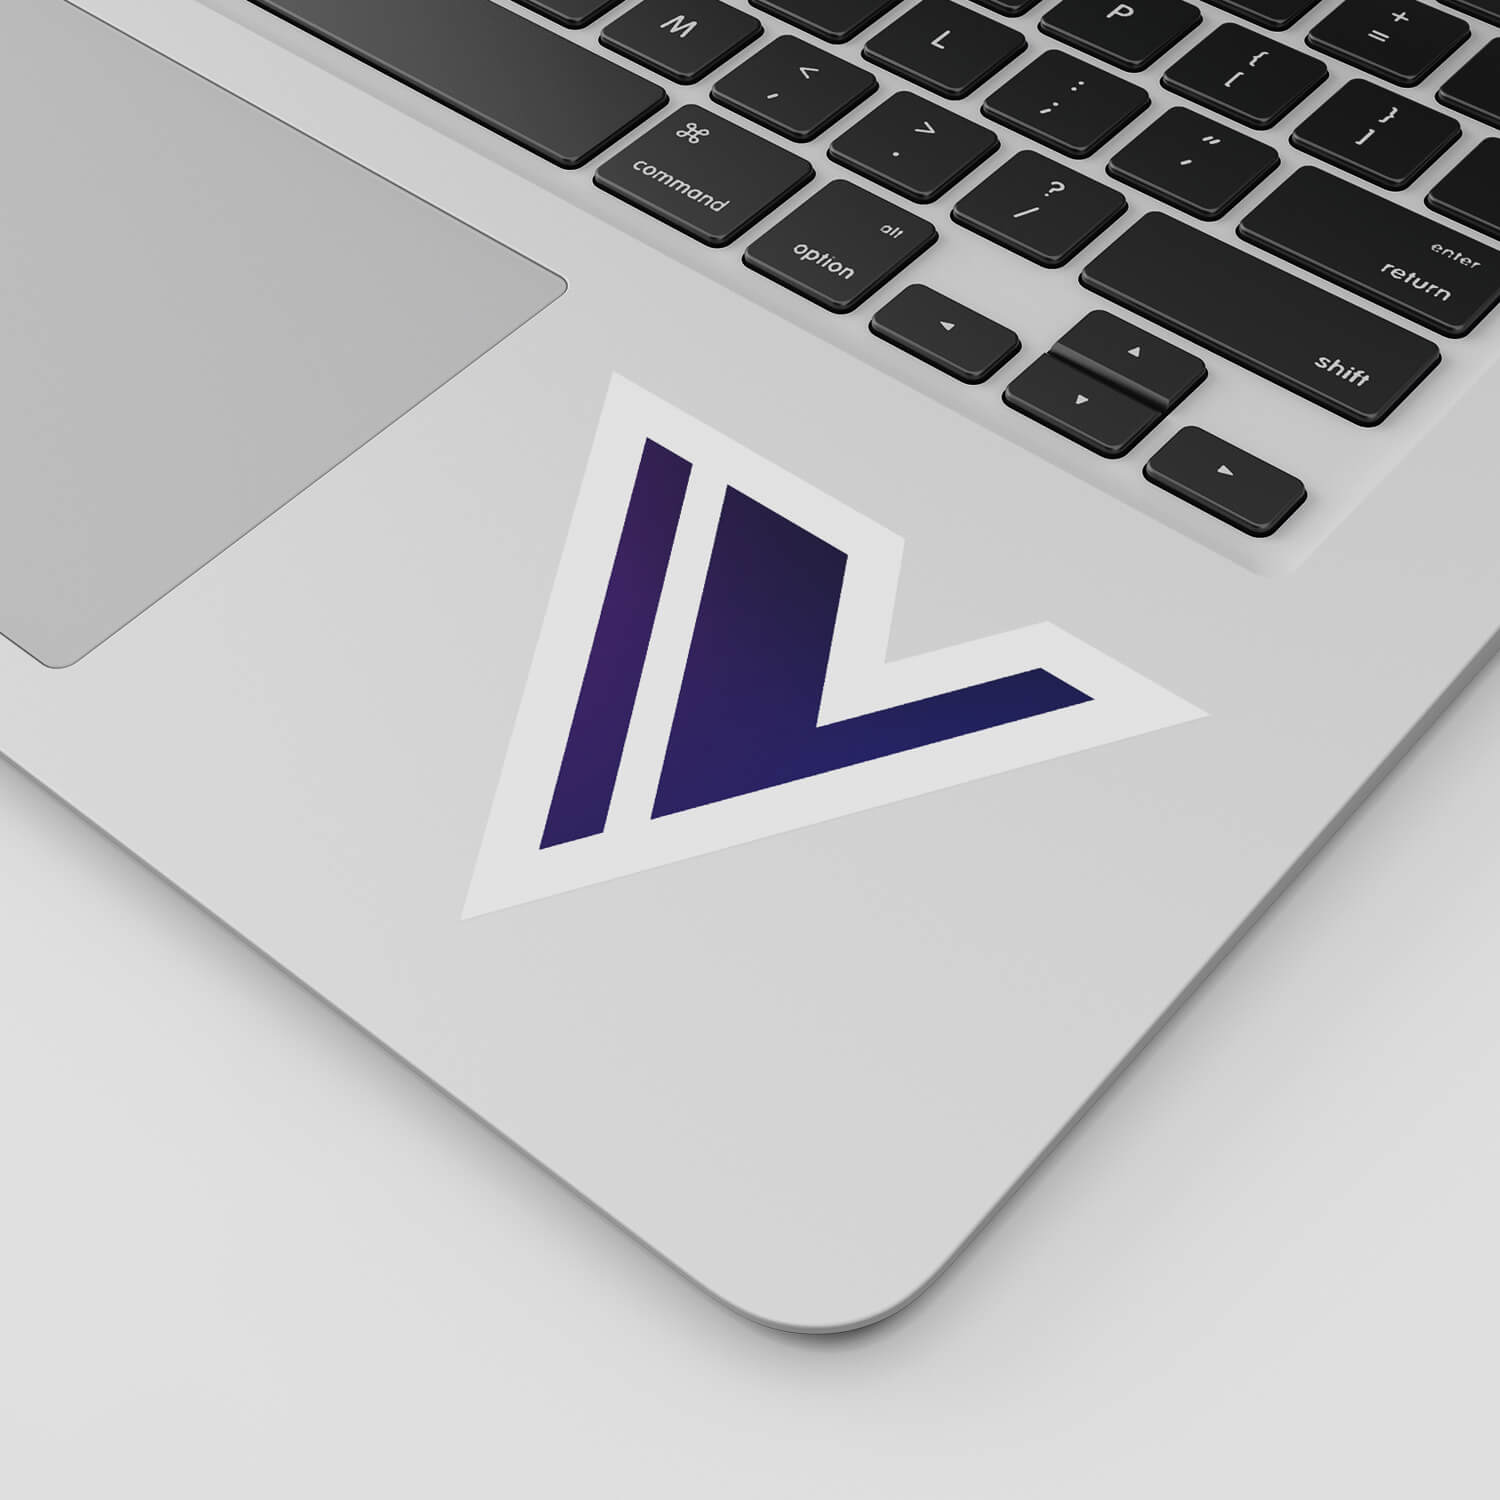 Close-up shot of a laptop with a sticker of the Vala app icon